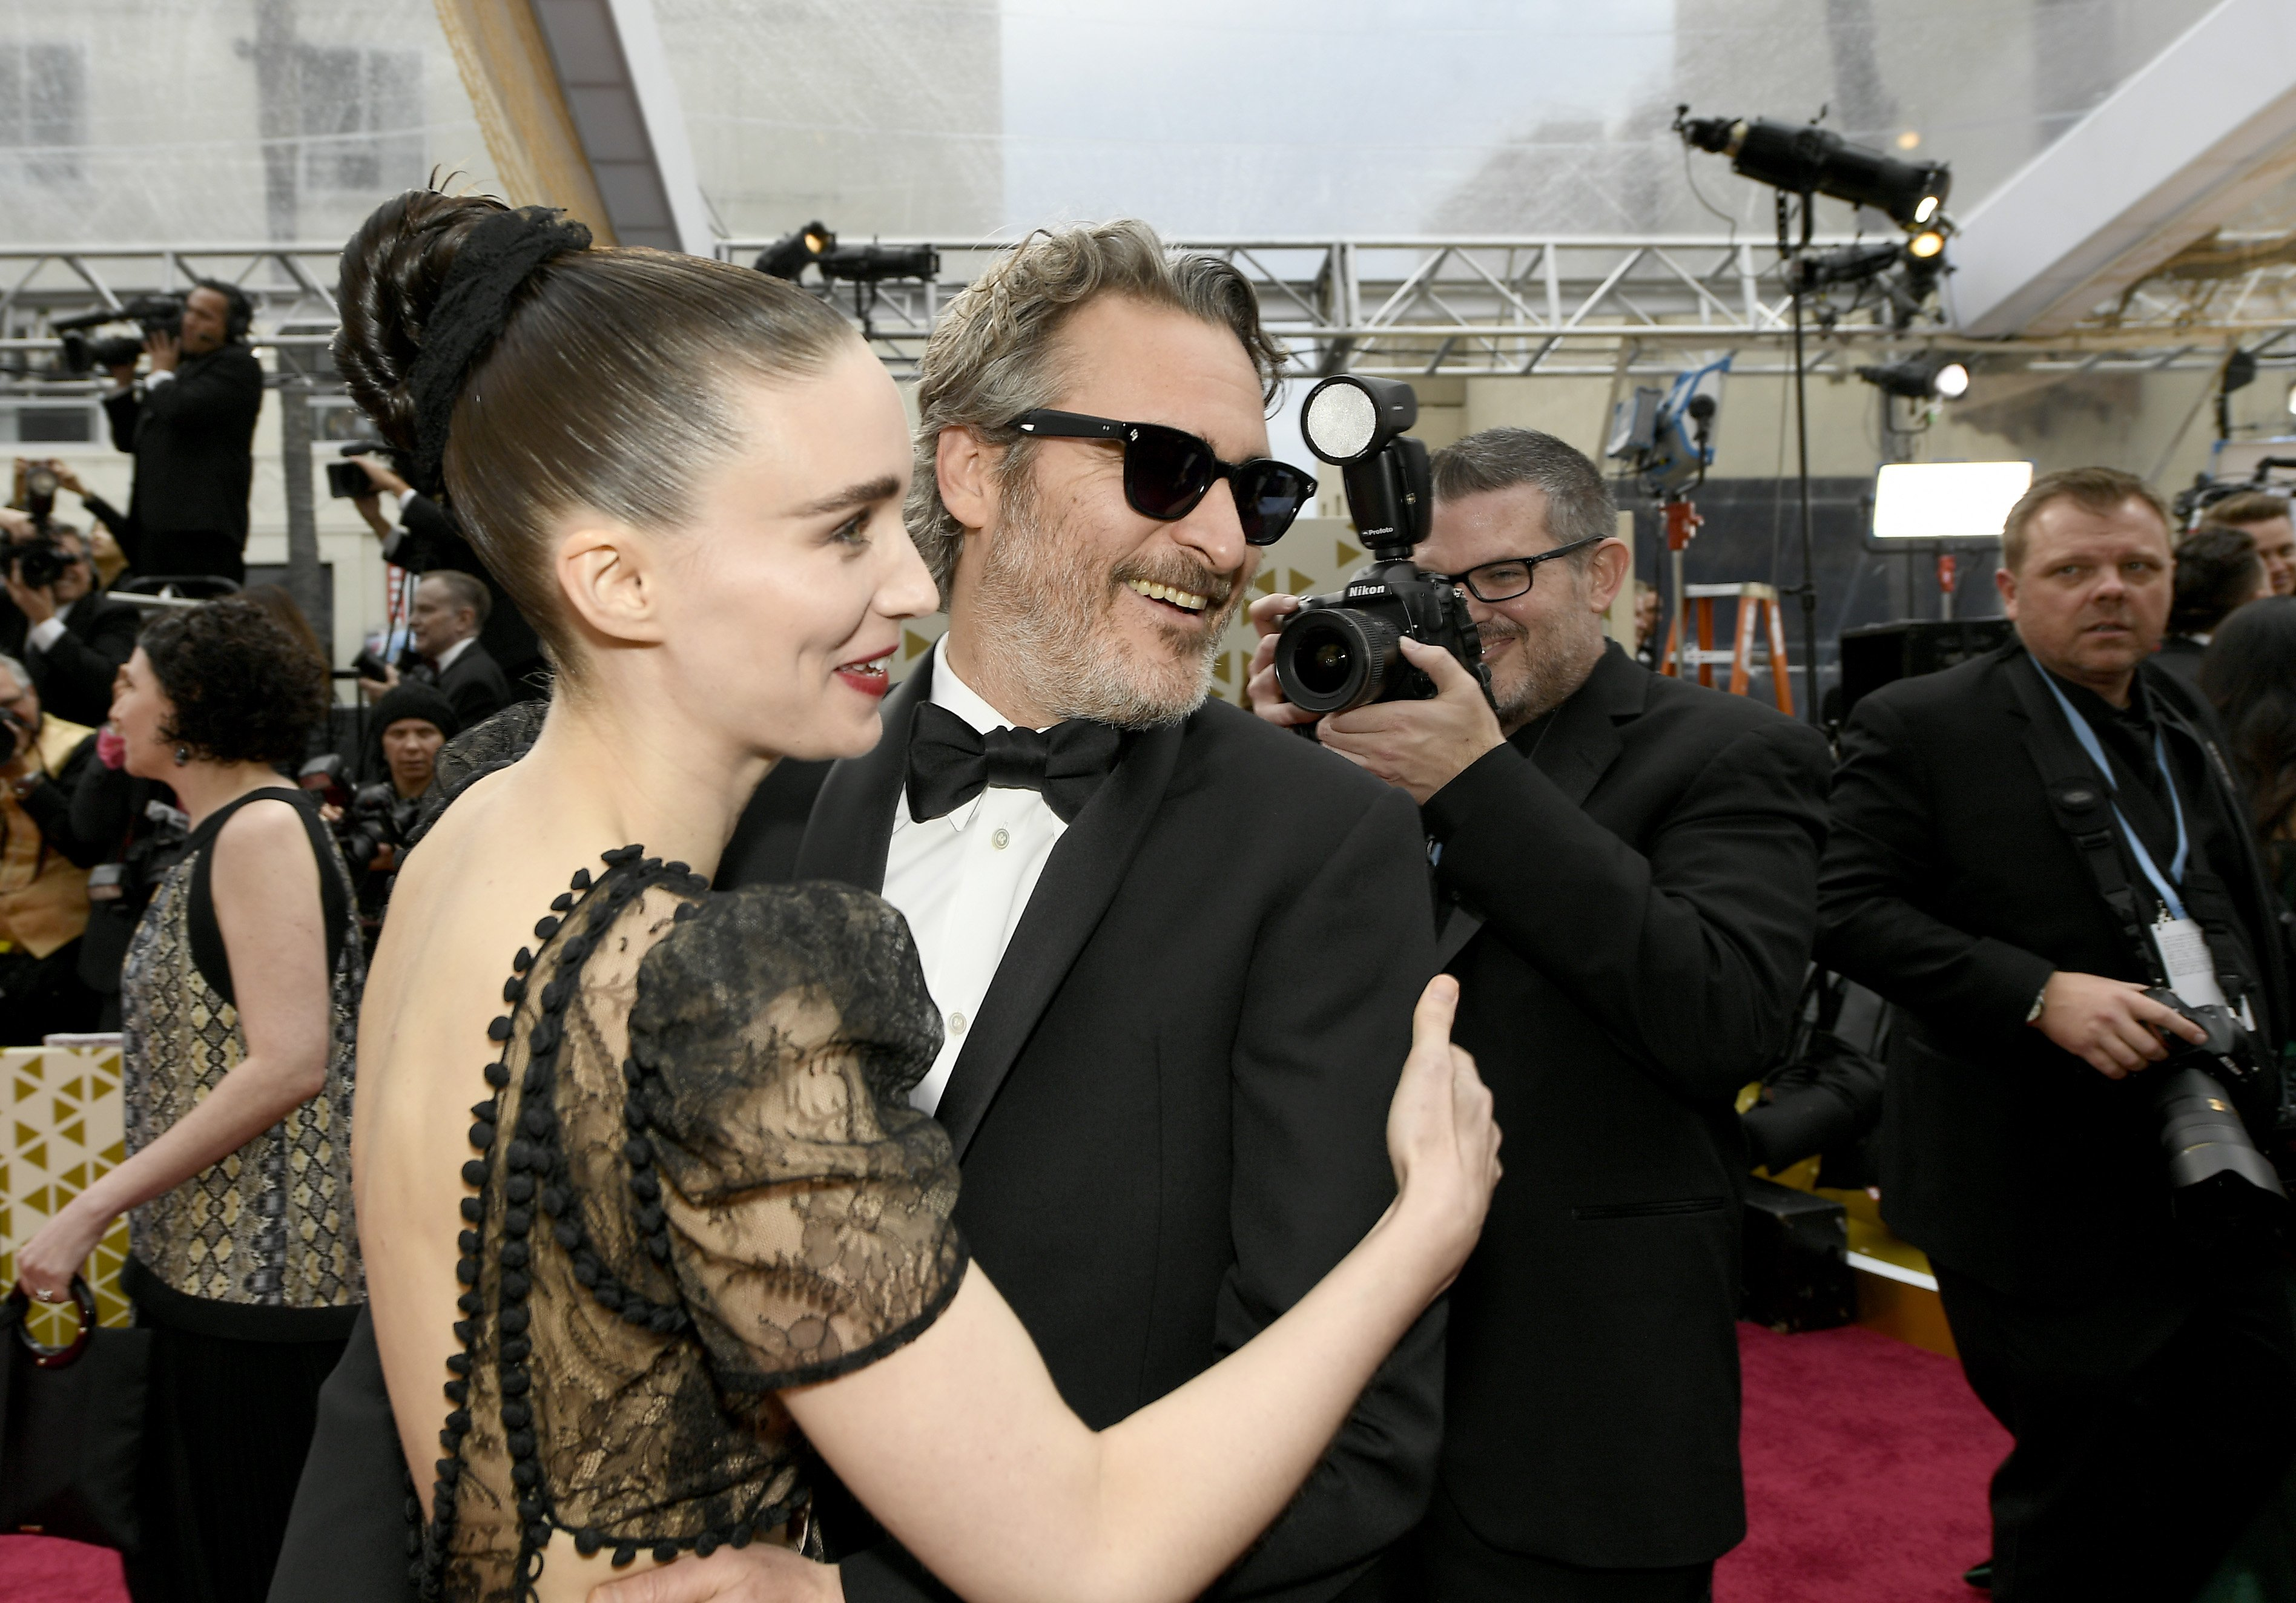 Rooney Mara and Joaquin Phoenix attends the Academy Awards in Hollywood, California on February 9, 2020 | Photo: Getty Images